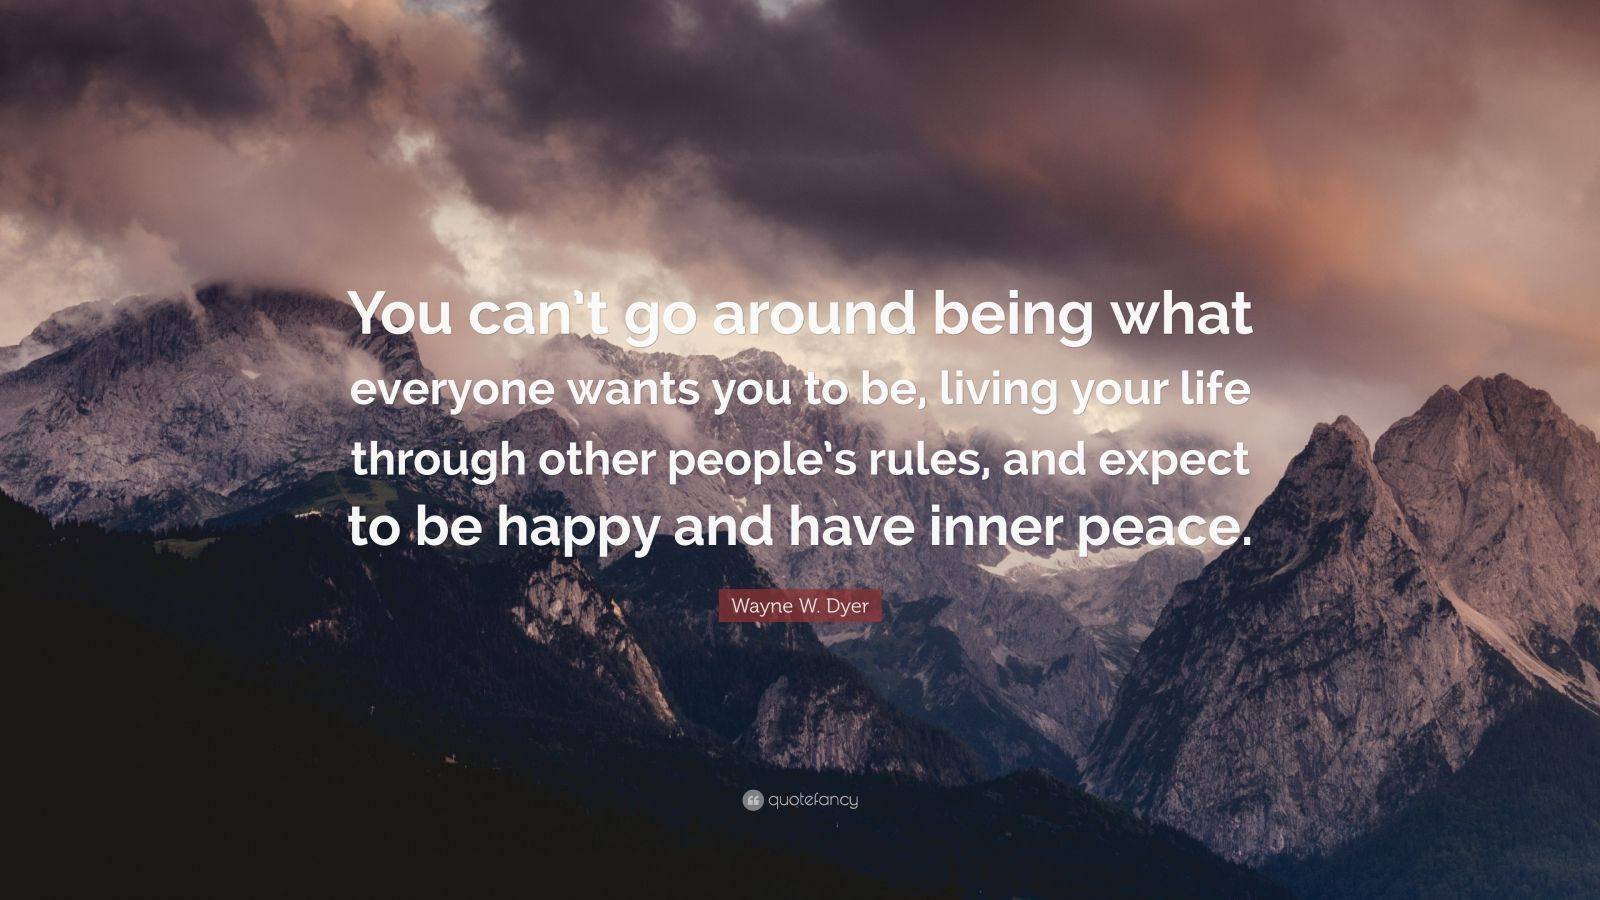 "Wayne W. Dyer Quote: ""You can't go around being what everyone wants you to be, living your life through other people's rules, and expect to be happy and have inner peace."""